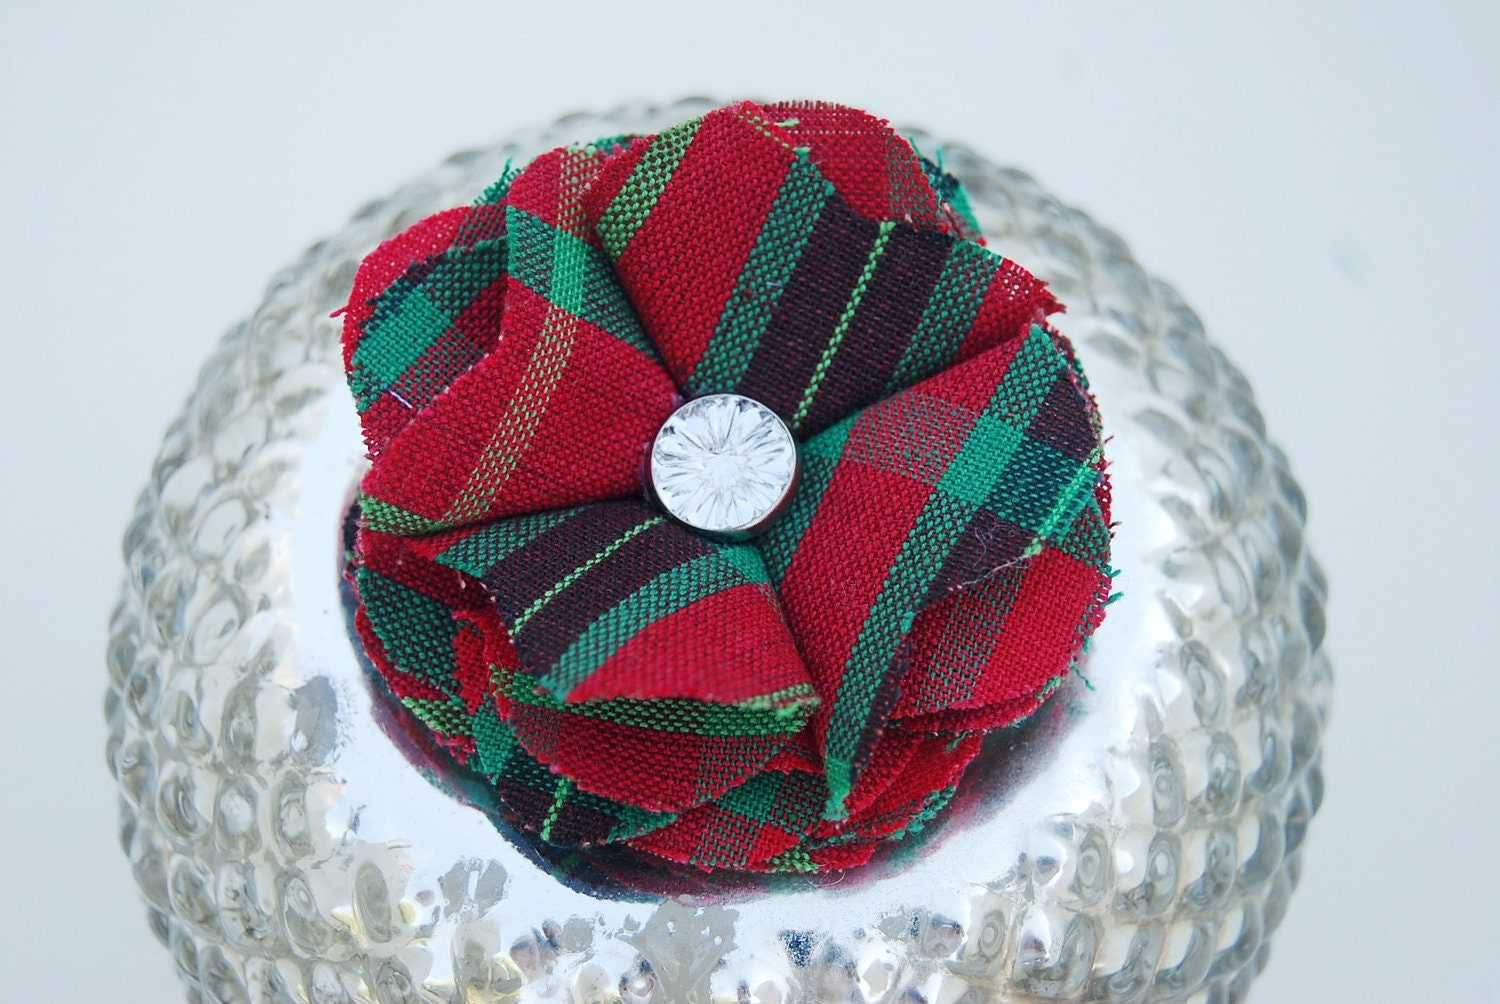 Christmas Tartan Plaid Rhinestone Fabric Flower Pin, Clip, Hair Accessory for Girl, Children